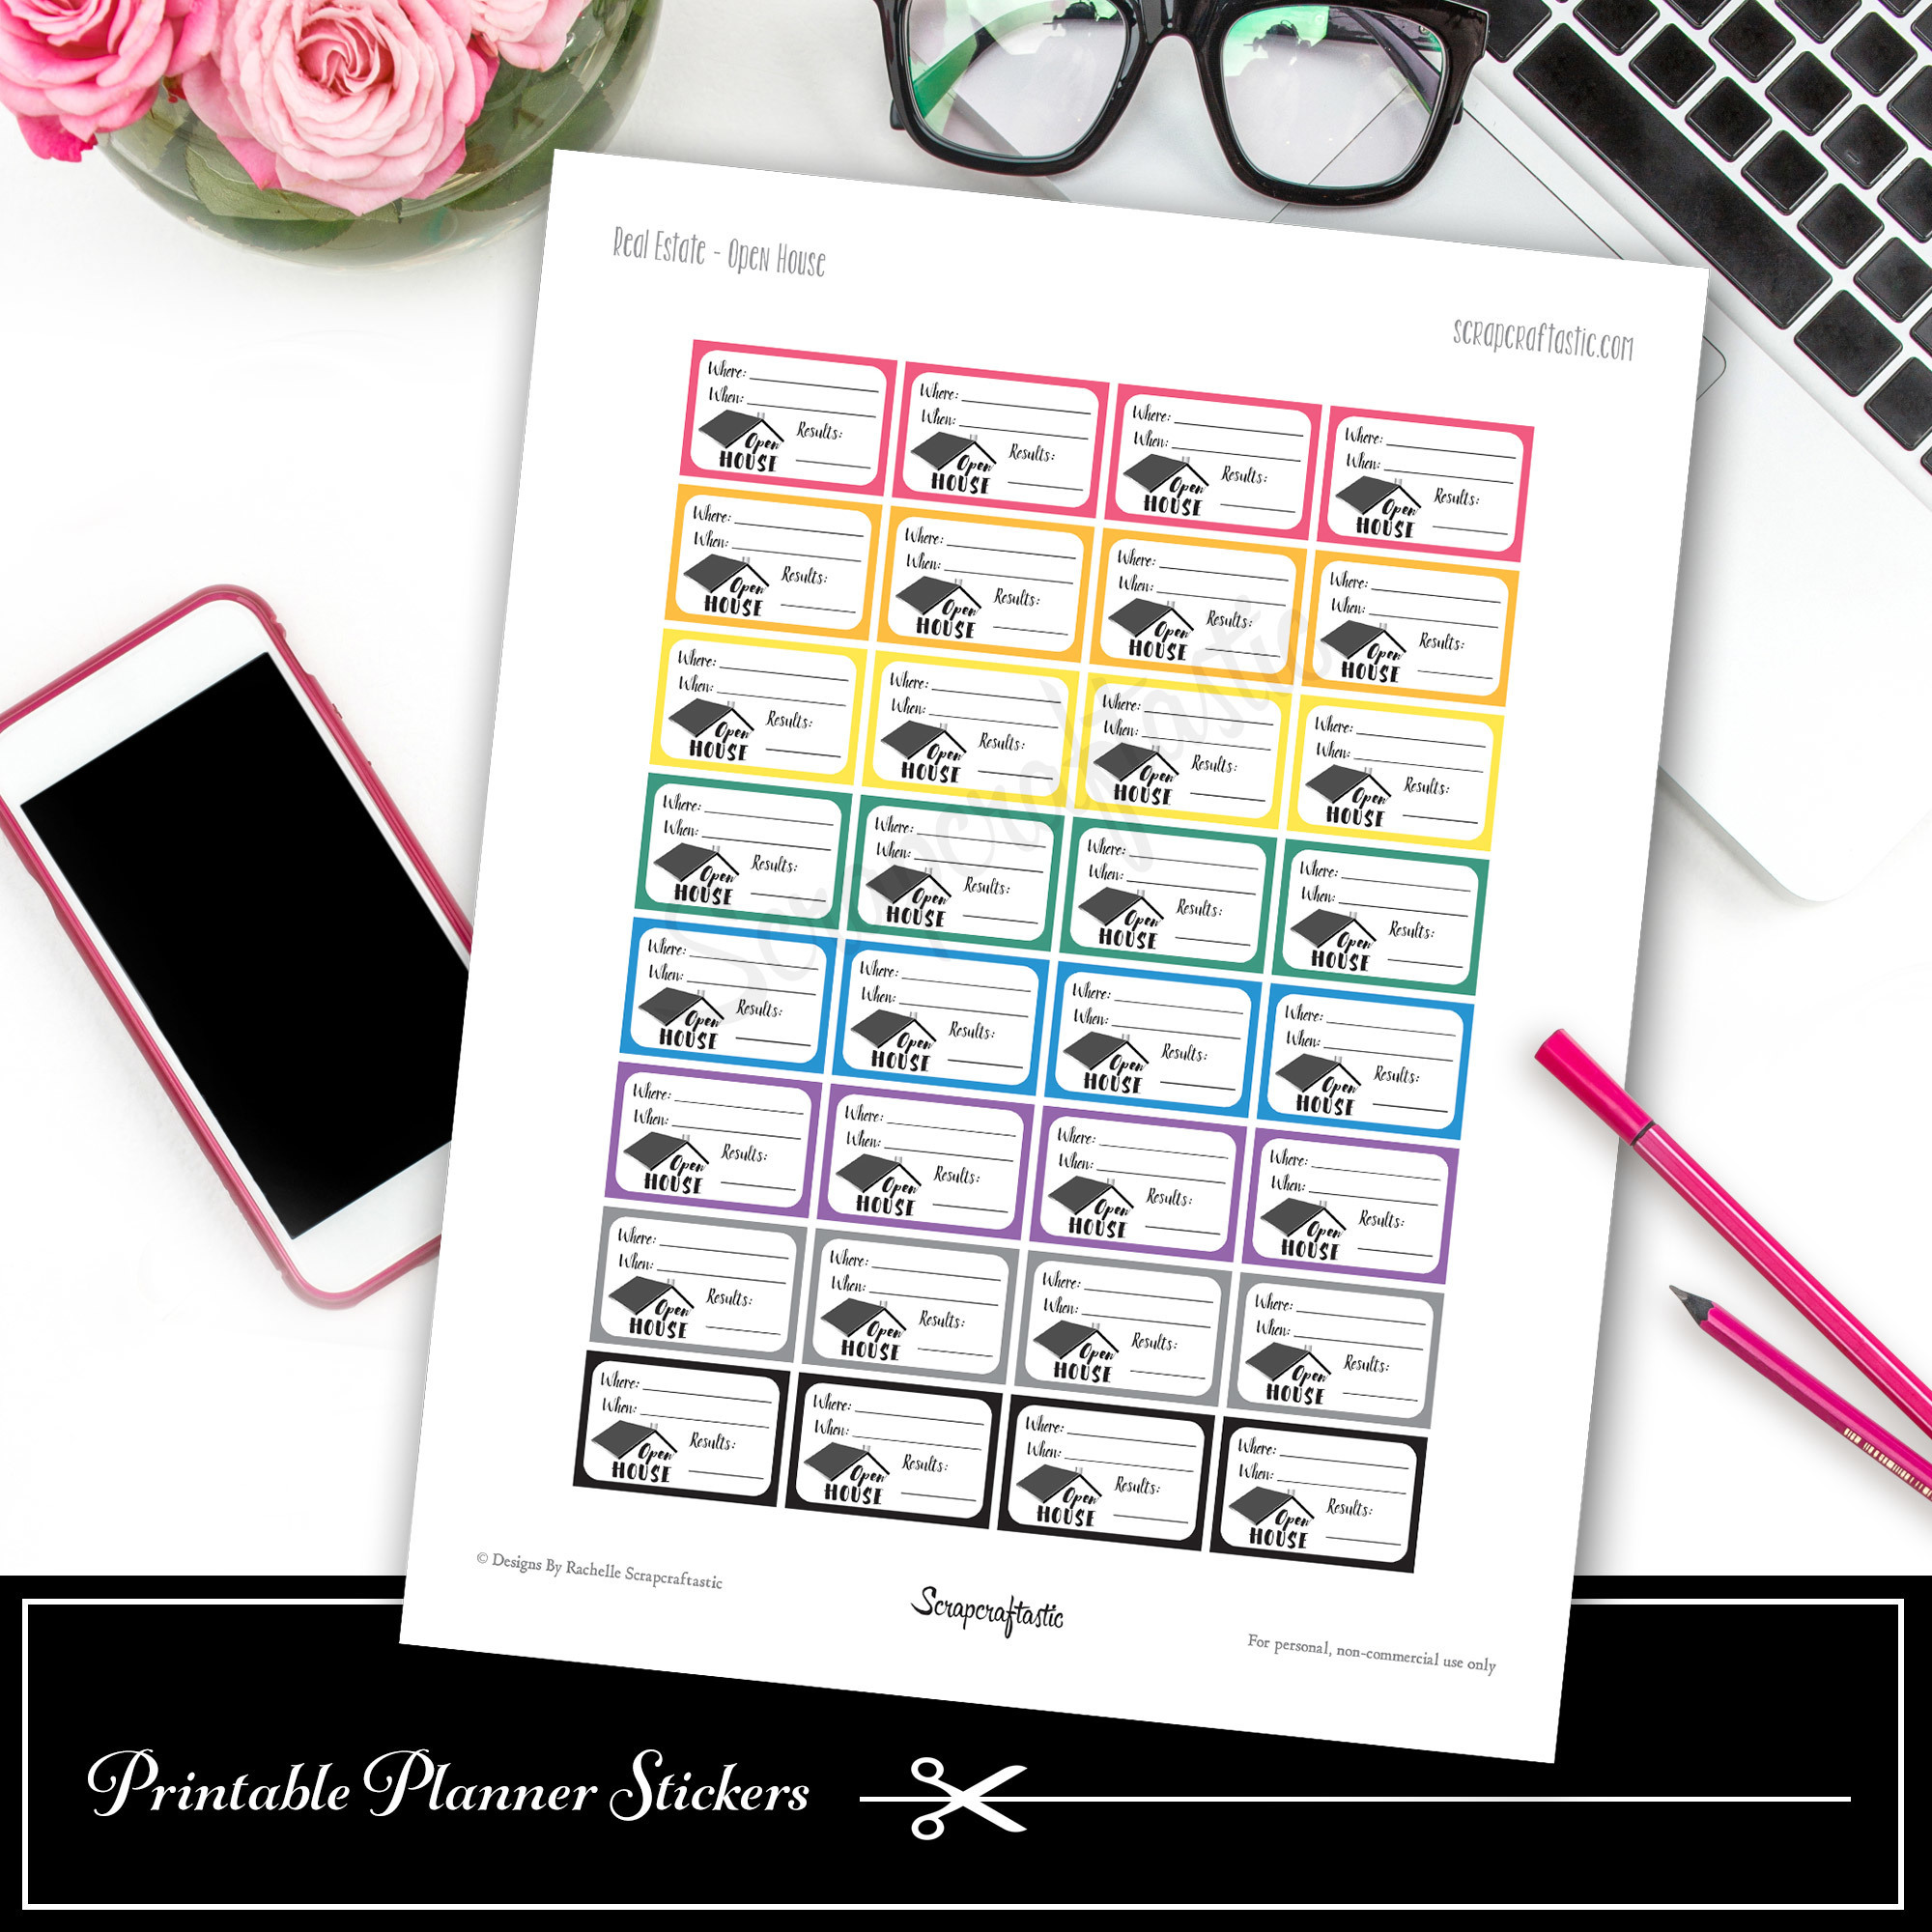 Real Estate Open House Printable Planner Stickers - Half Box 03001